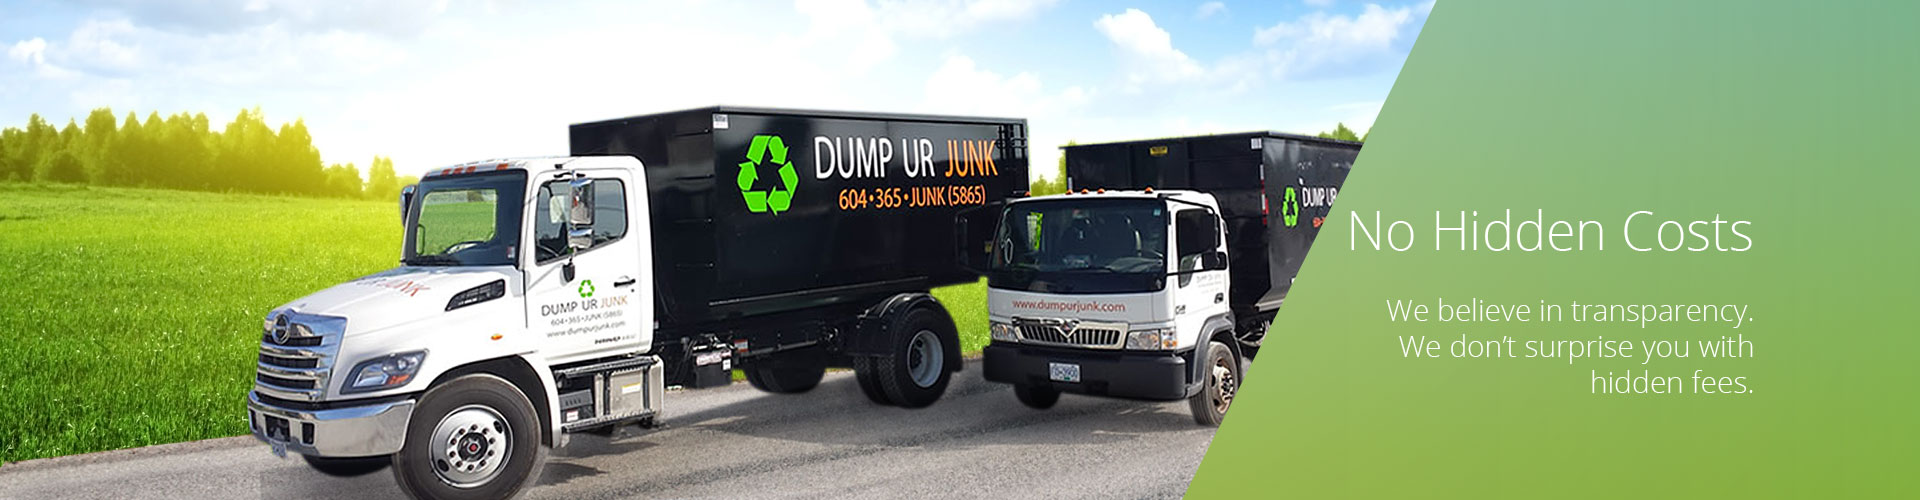 Dump Ur Junk - No Hidden Costs